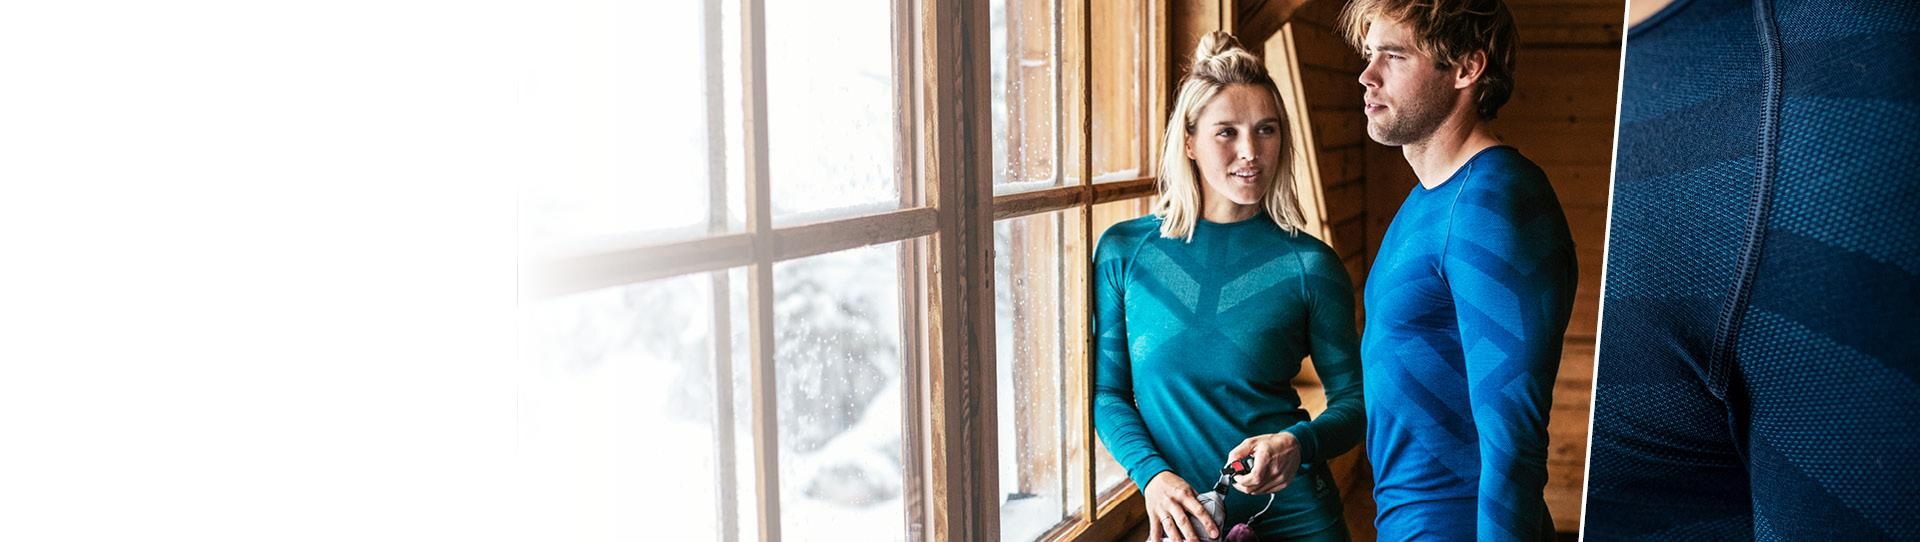 ODLO Nordic skiing and Cross-Country Collection FALL WINTER 2020